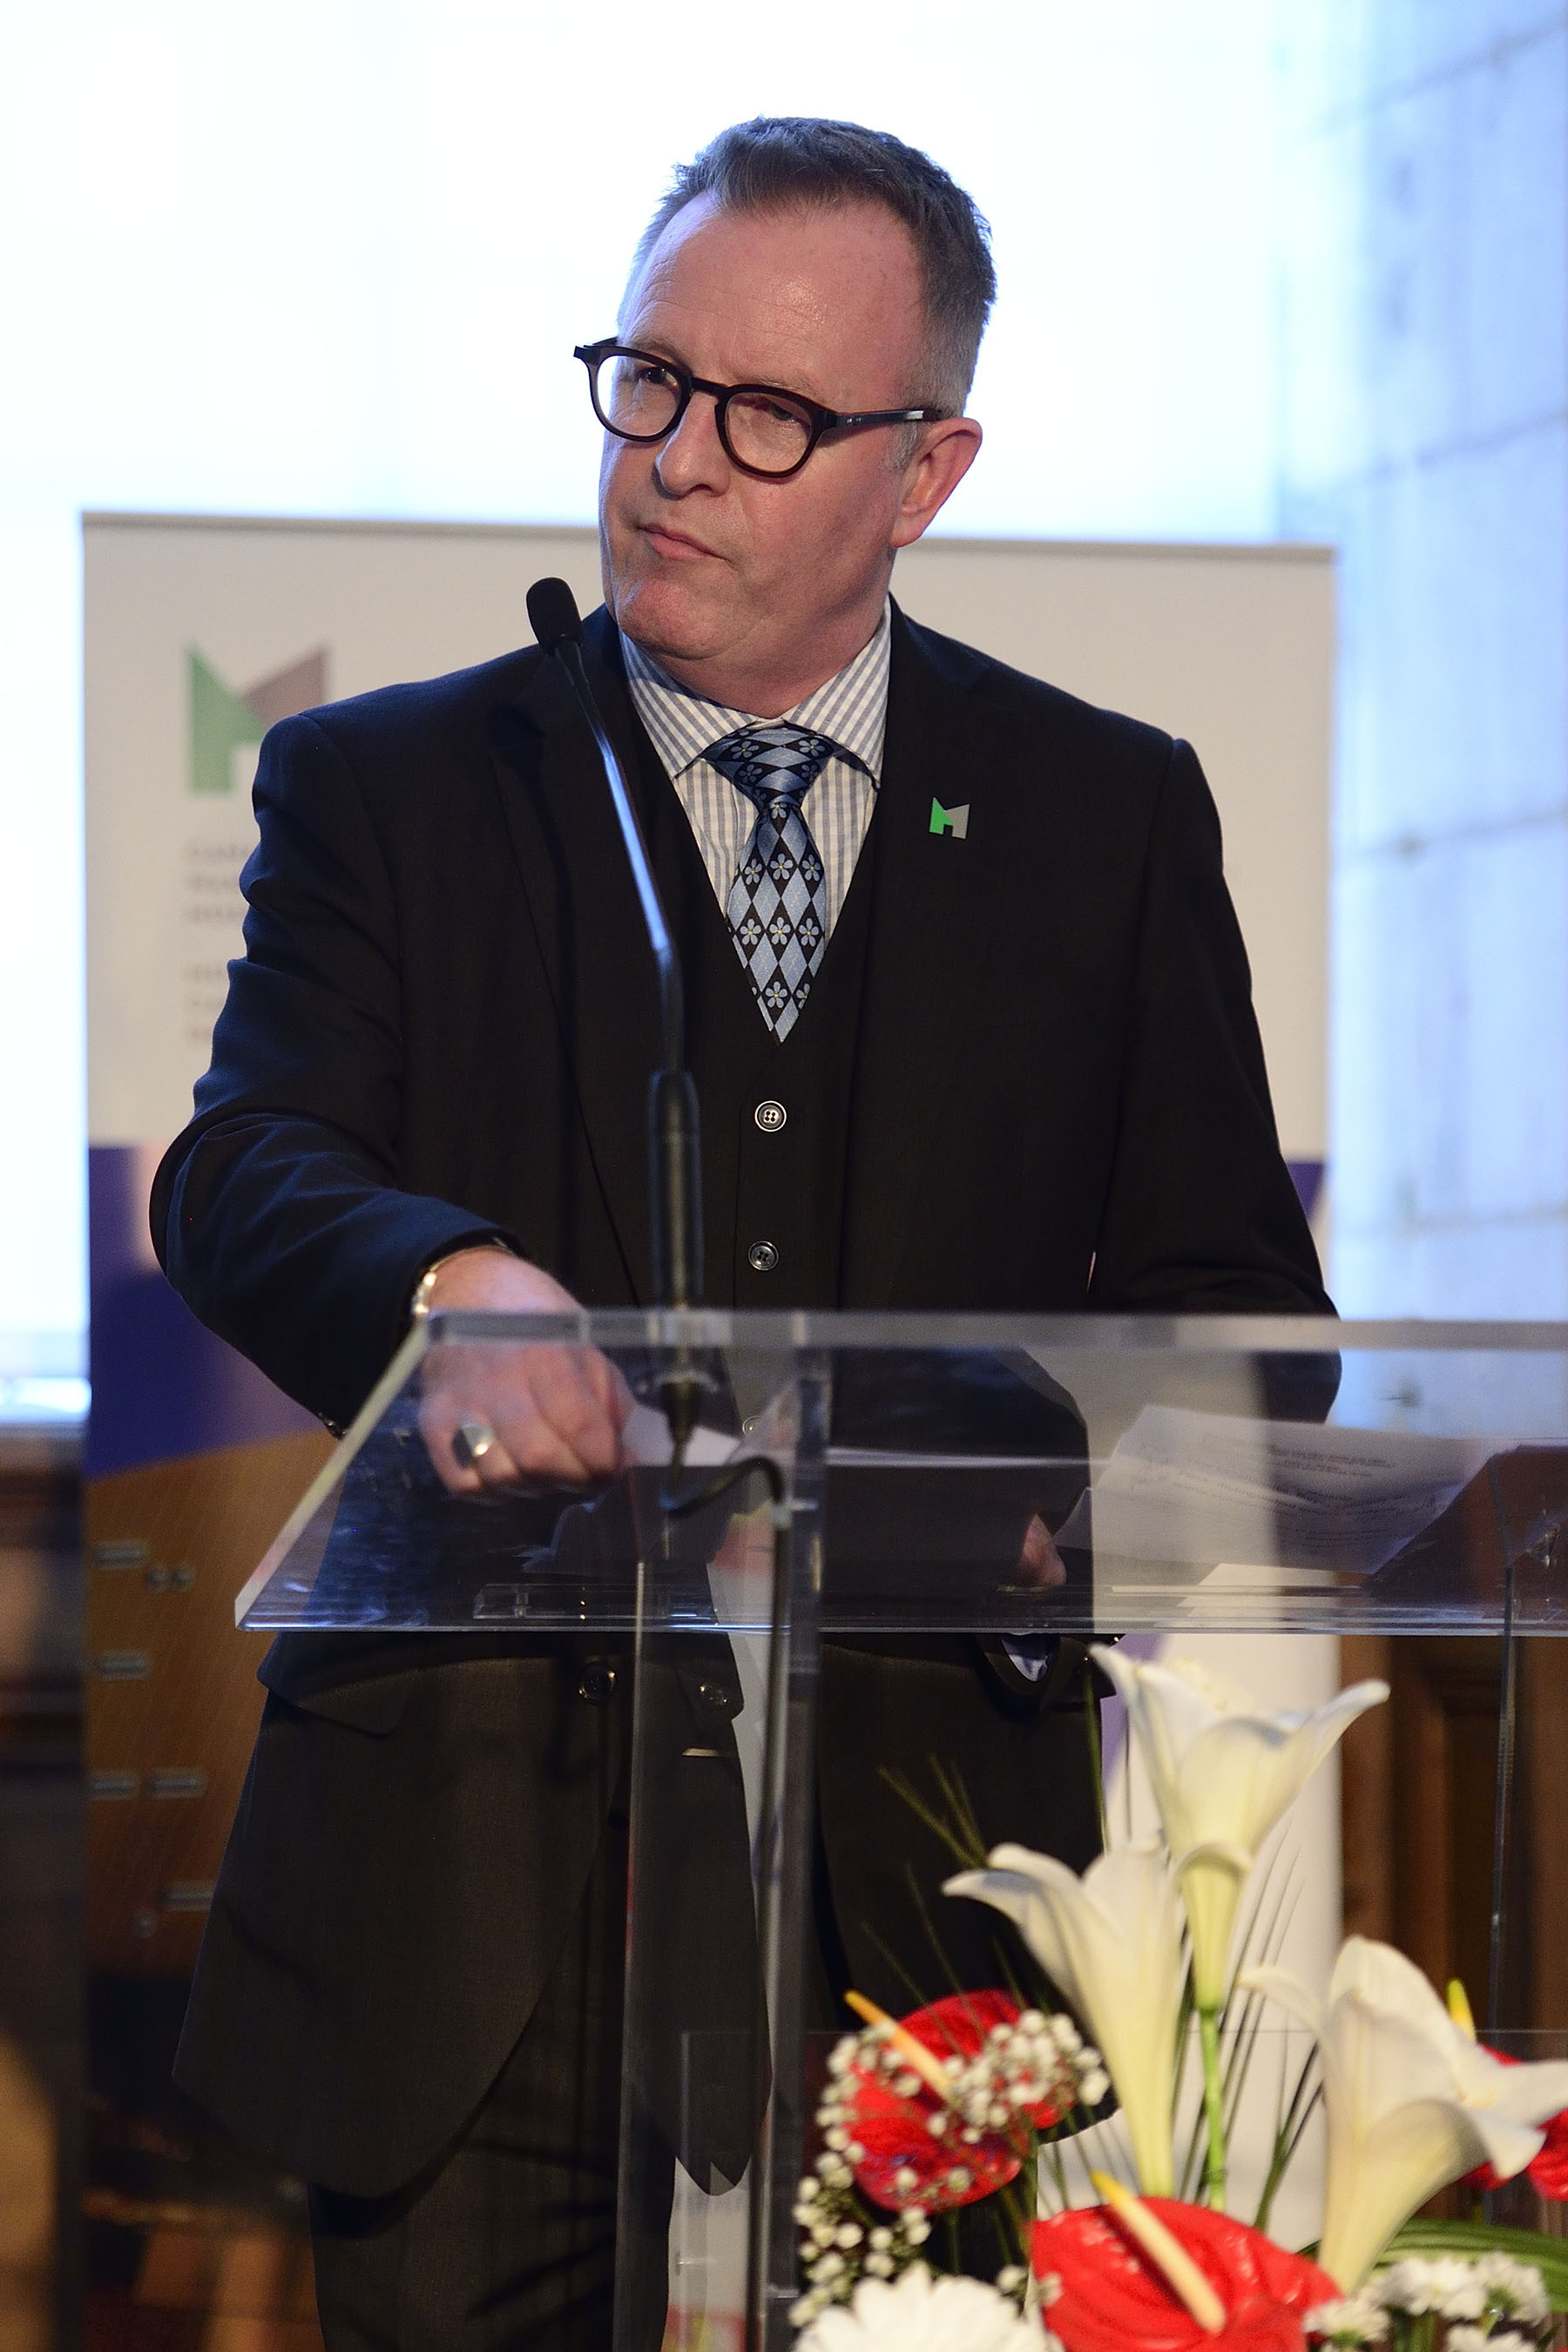 Following the viewing of the exhibition, Their Excellencies attended a reception hosted at the museum. Mr. Mark O'Neill, President and CEO of the Canadian War Museum and the Canadian Museum of History, delivered remarks.